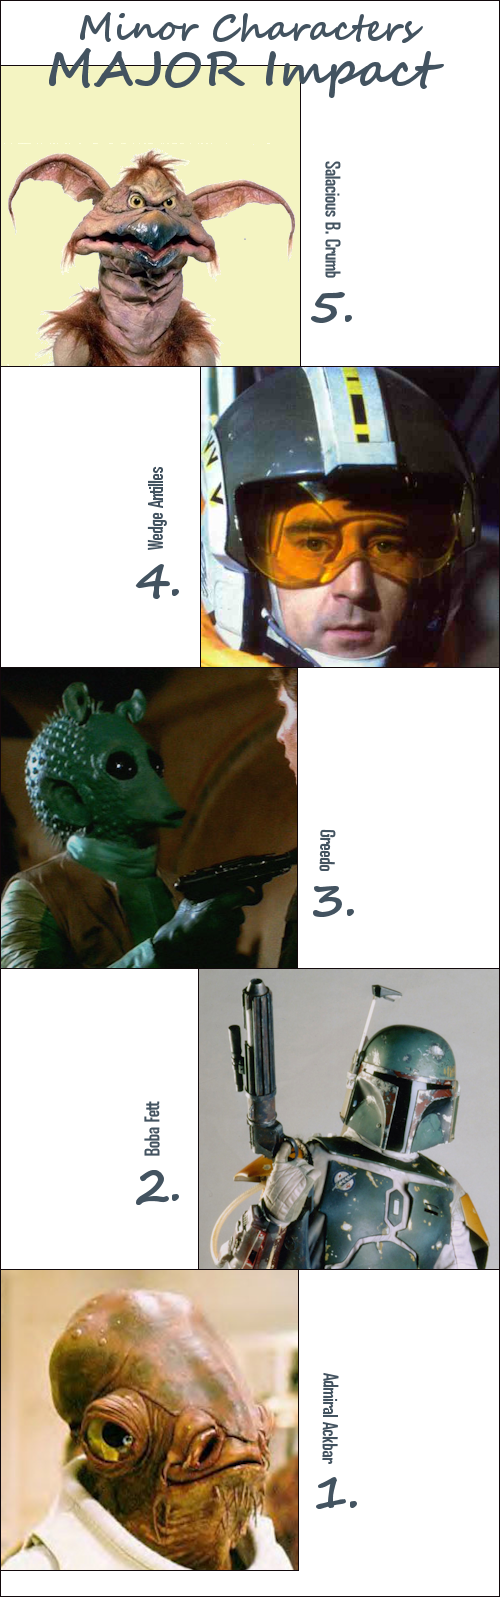 Side characters add the personality, humor or exclamation point to a story. A few of my favorites from the original Star Wars trilogy